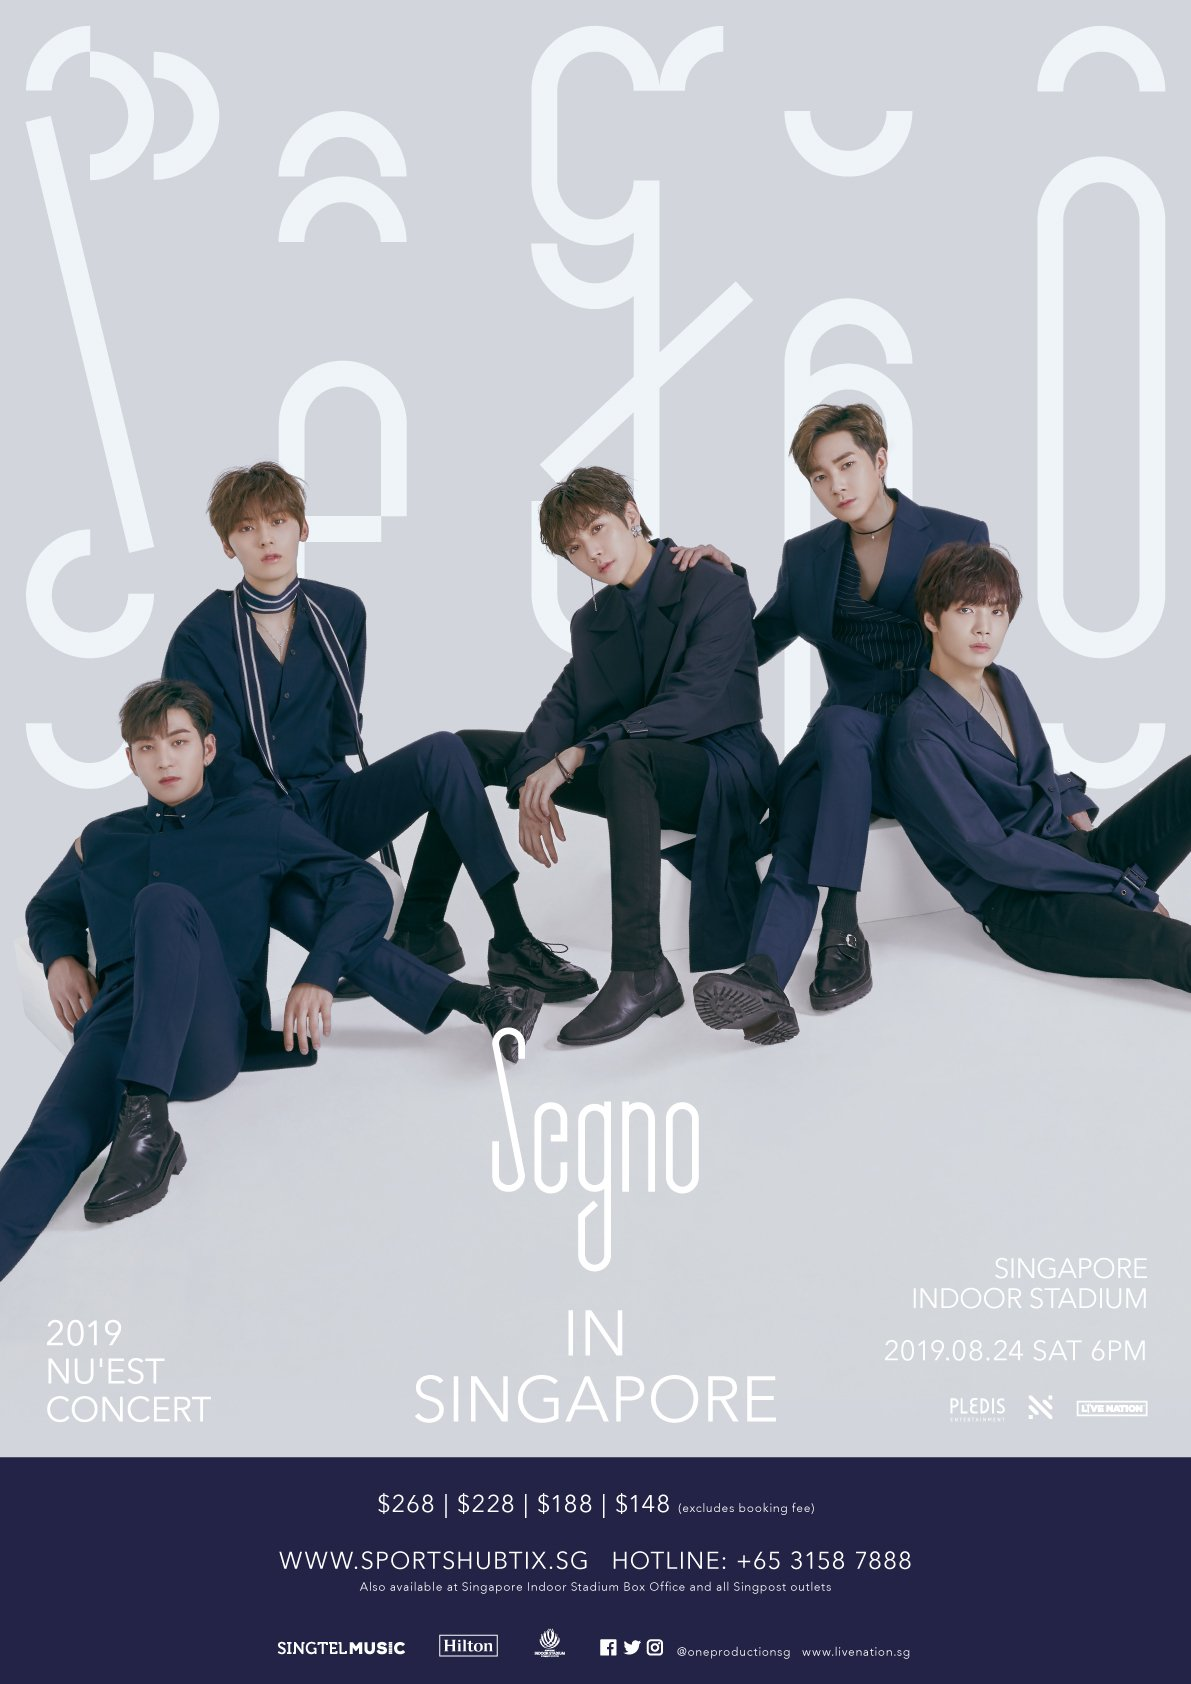 NU'EST Announces Upcoming Segno Tour in Singapore